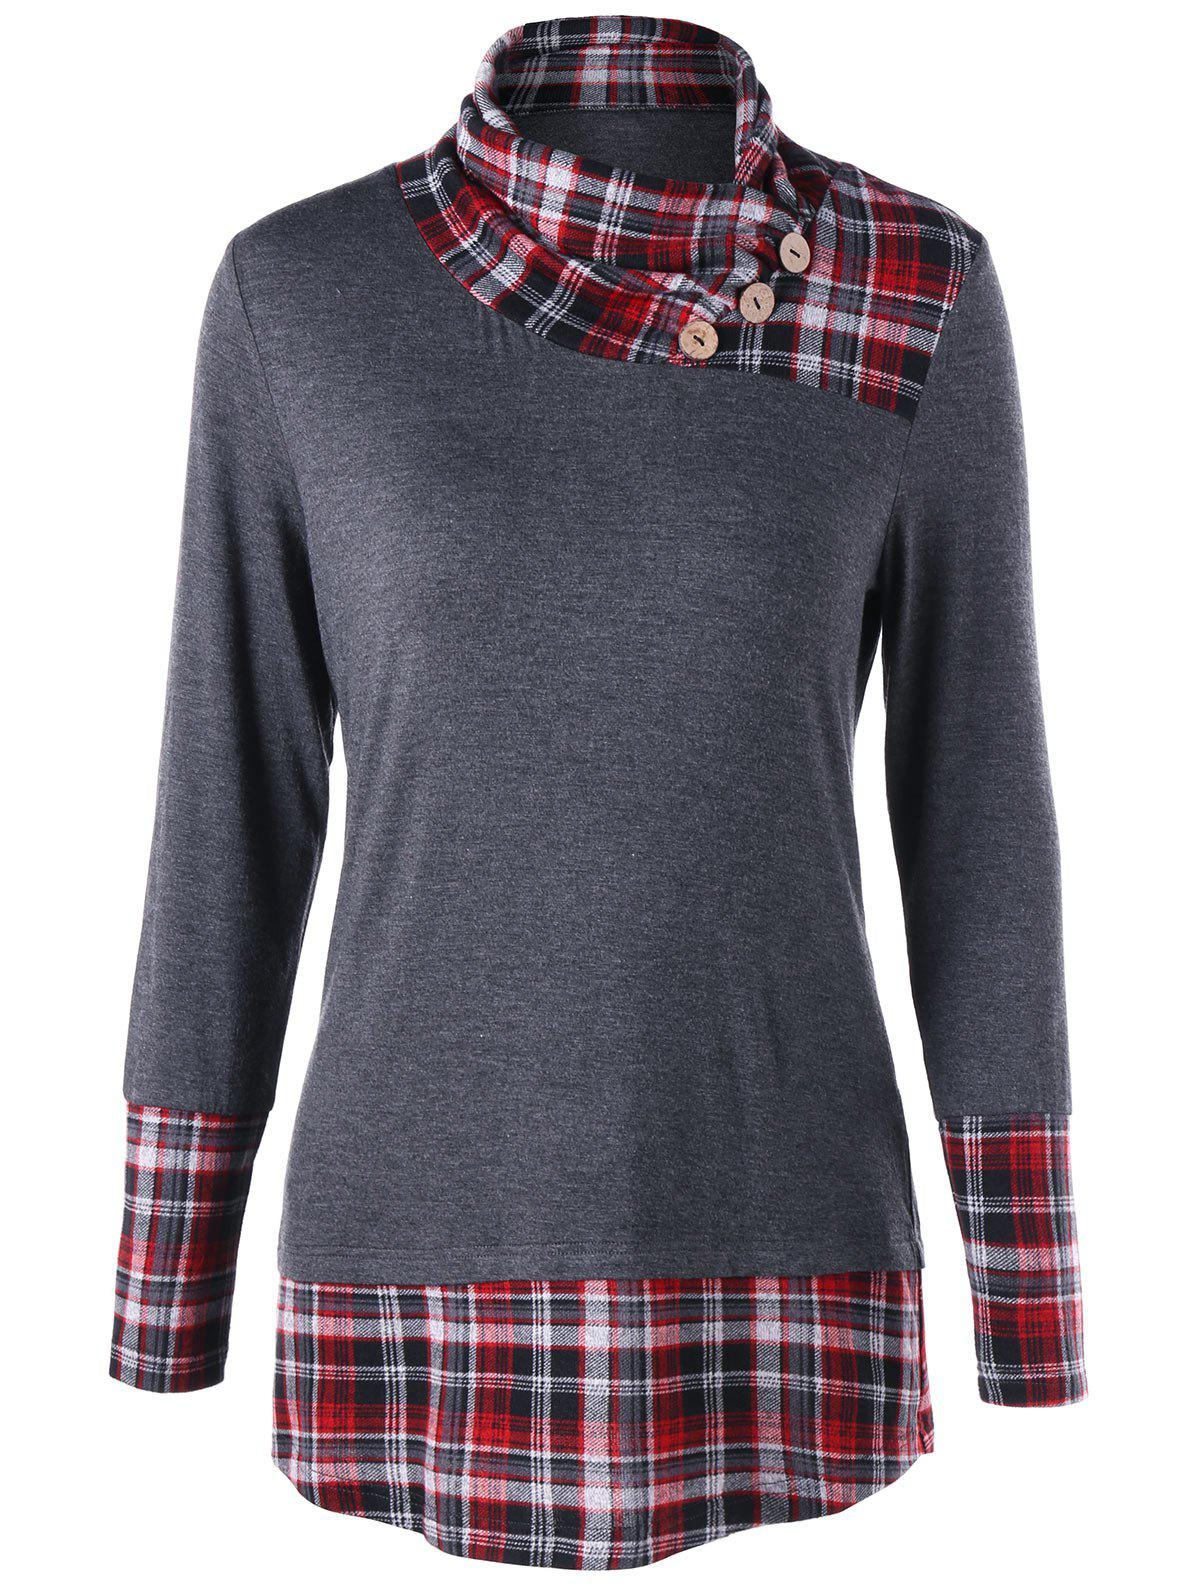 Hot Plaid Hem Tunic Top